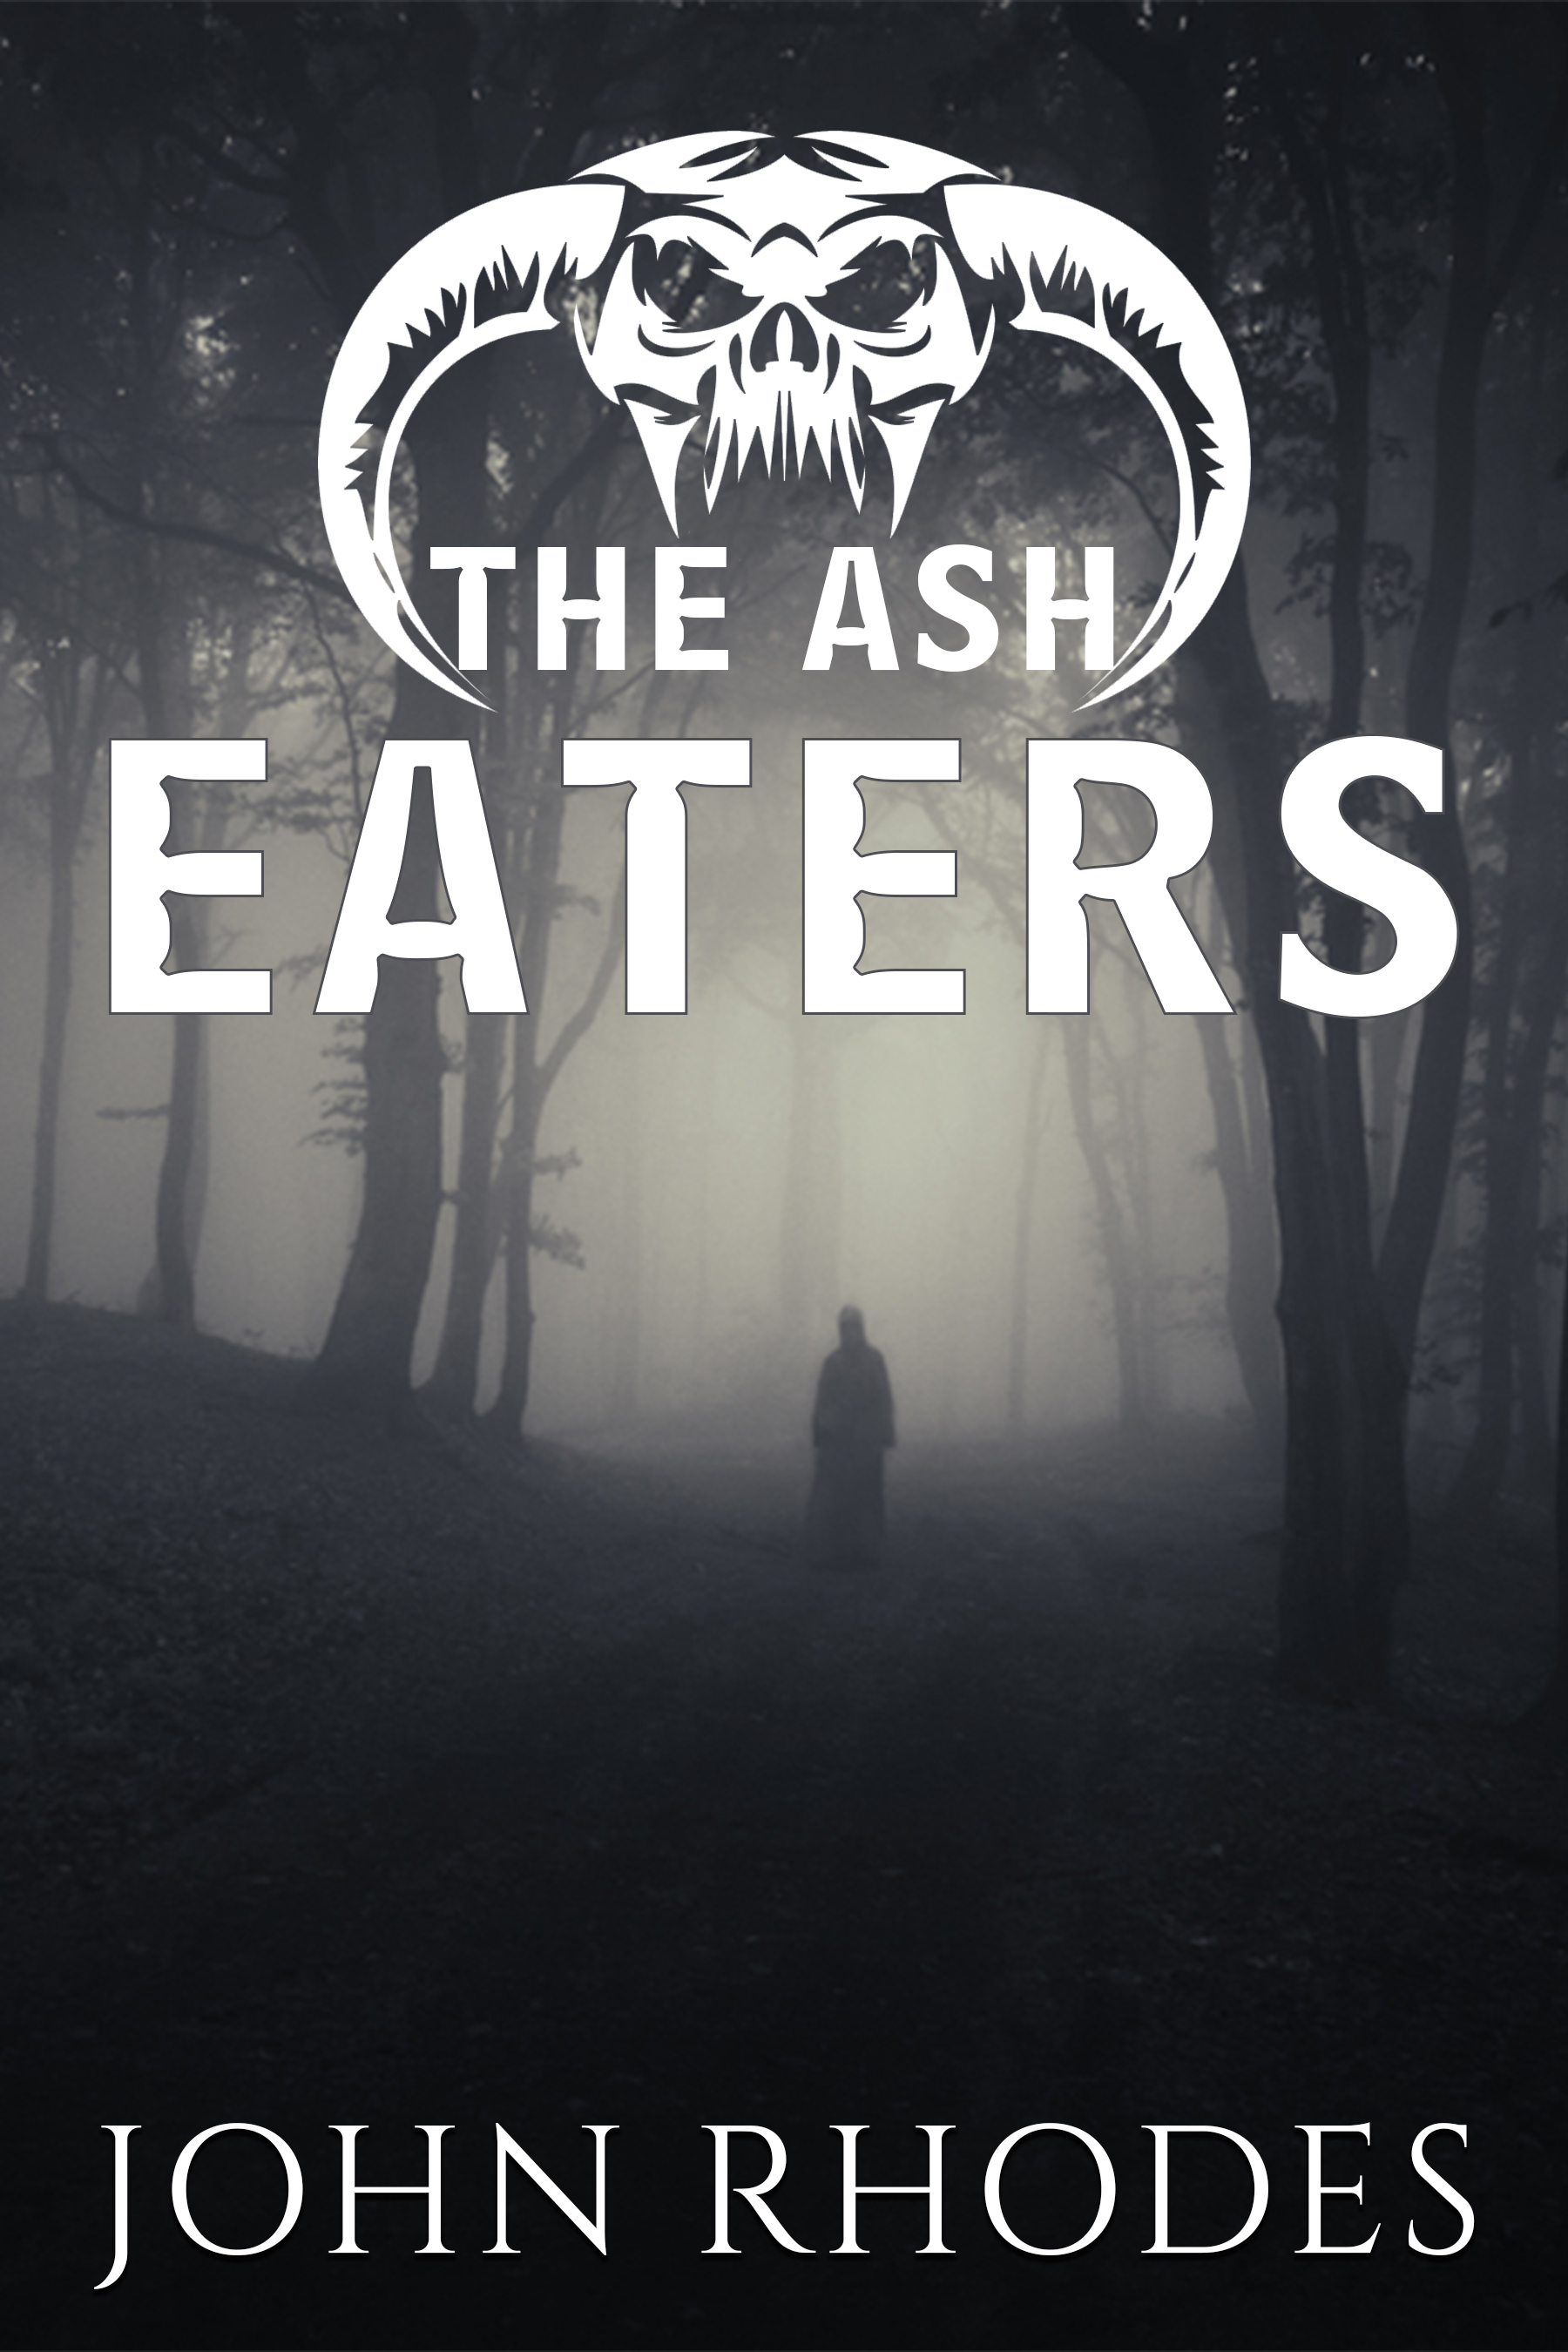 The Ash Eaters